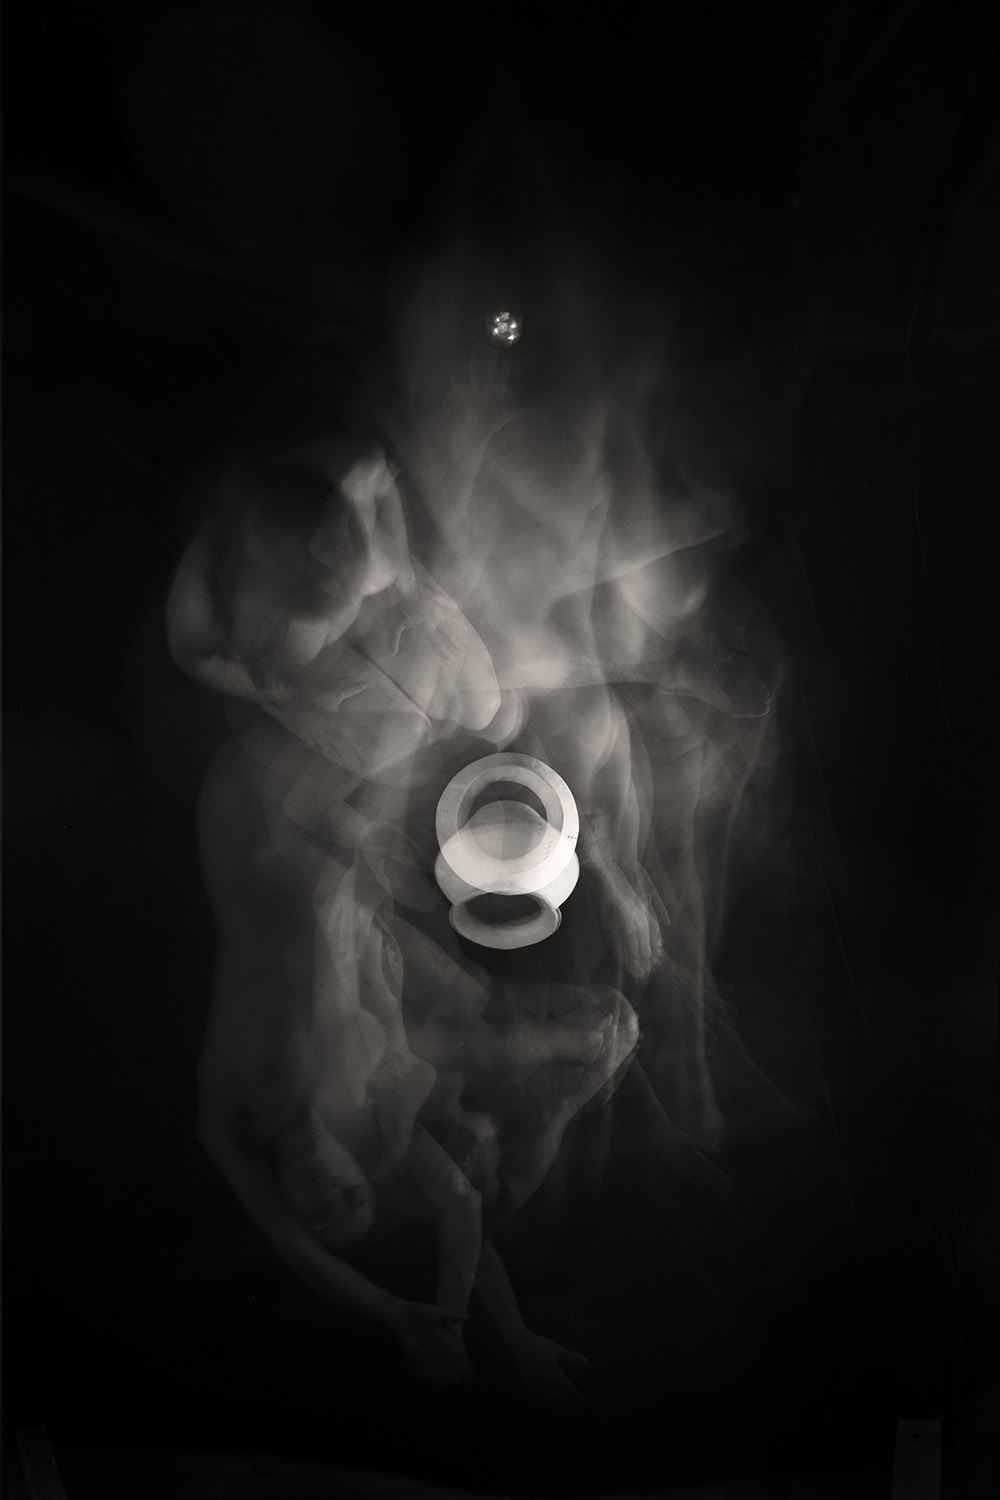 Carla Janse van Rensburg Untitled (10 minute exposure of Protection Vase Consecration Ritual 2) 2018 digital photograph archival ink on Hahnemuhle, 1of20 35.5 x 24.2 cm